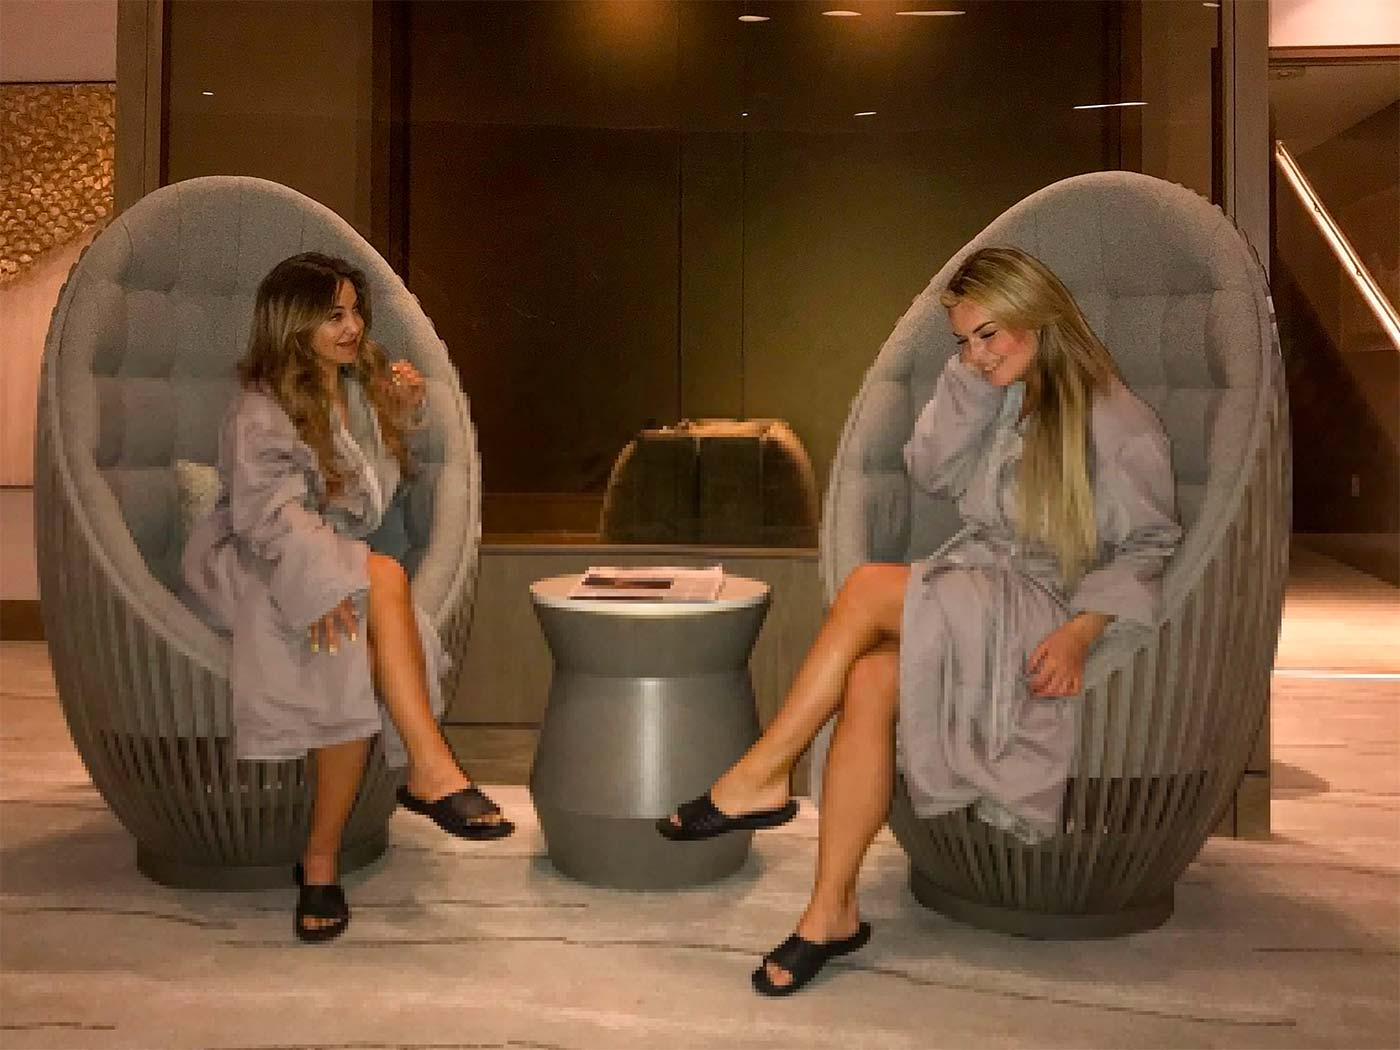 two women sit in spa armchairs while wearing robes